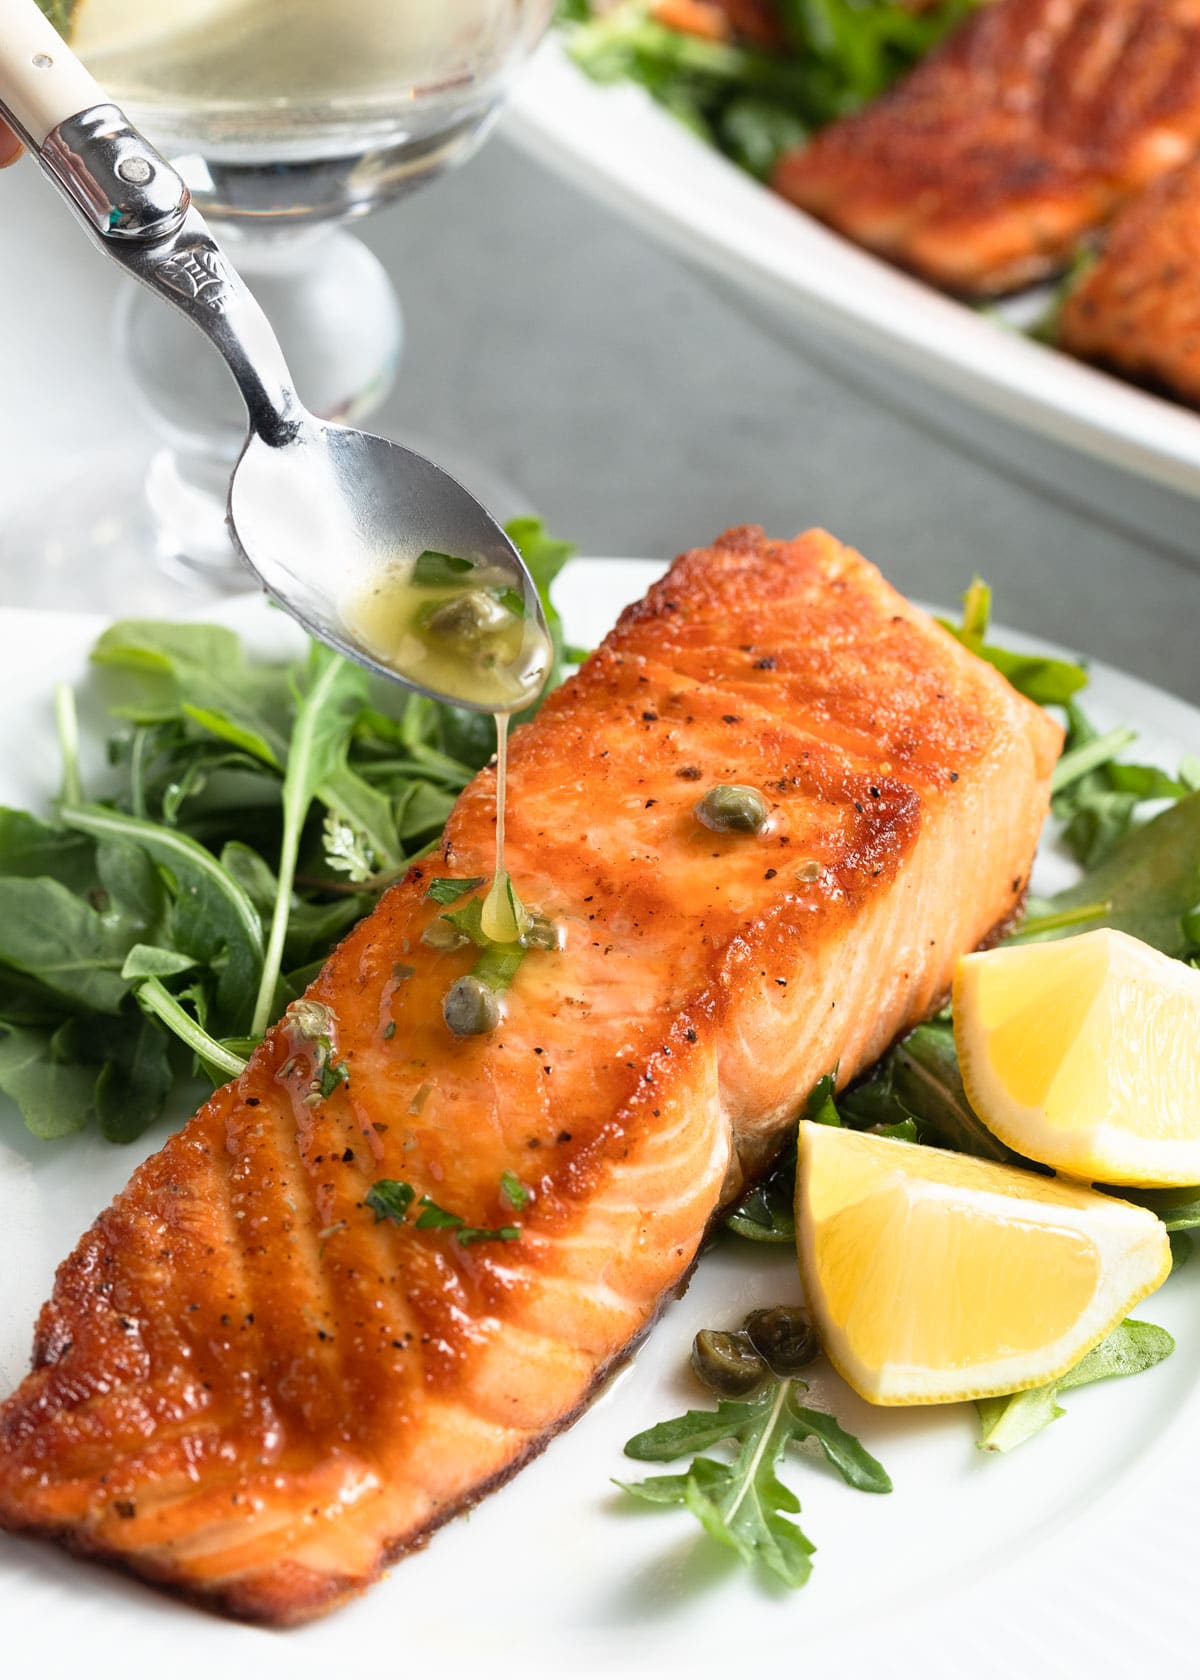 pan seared salmon fillet drizzled with lemon caper sauce